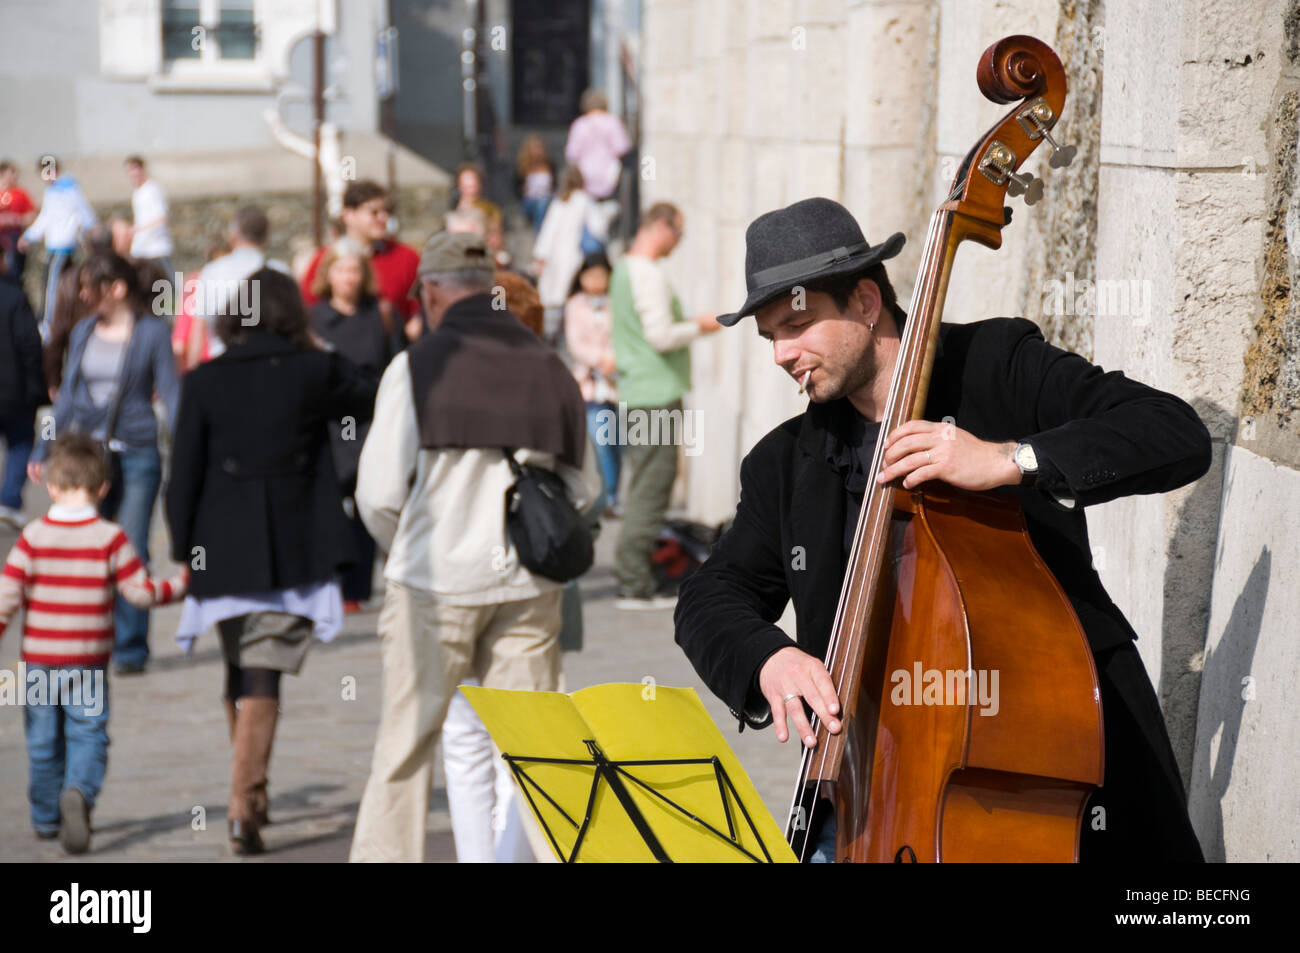 French street musician playing an upright bass in Paris. Stock Photo